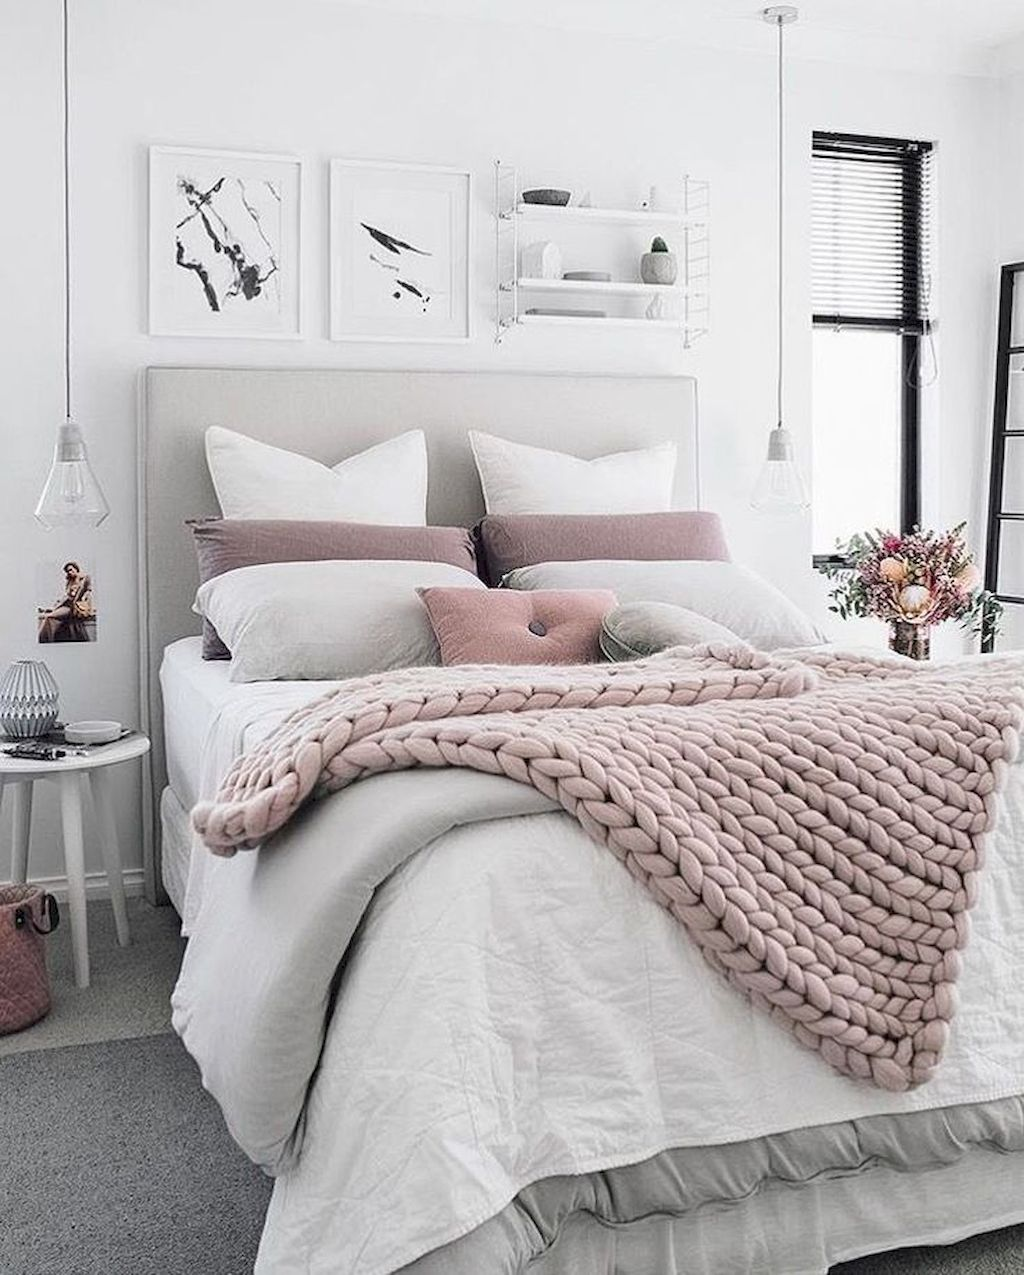 100 Fabulous Minimalist Bedroom Decor Ideas | Schlafzimmer, Modernes ...